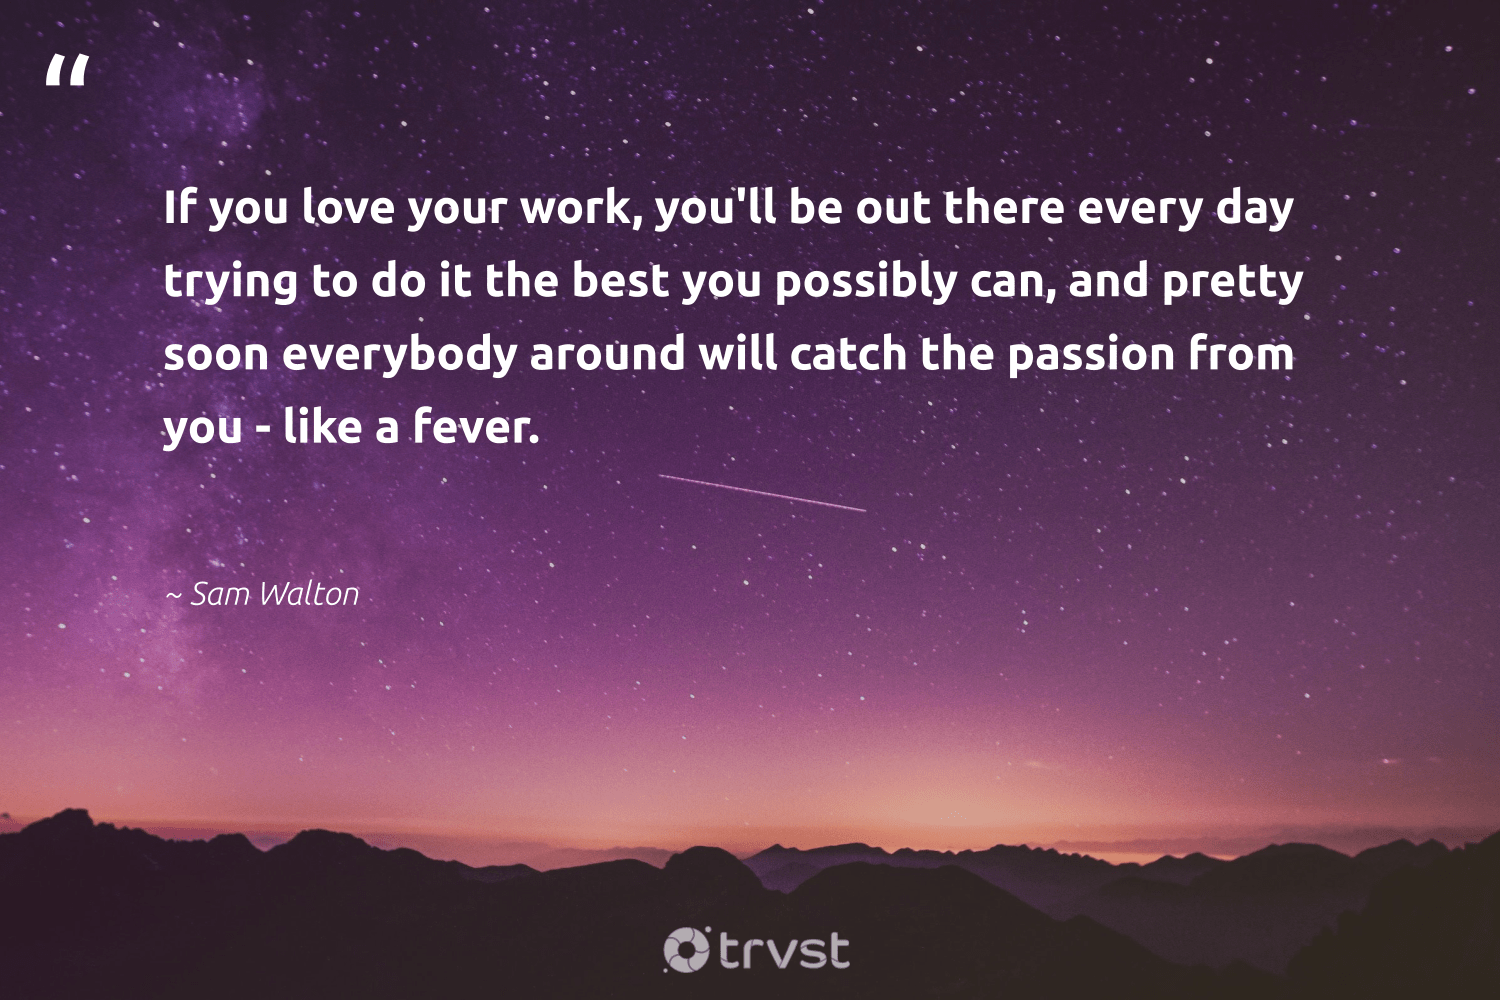 """If you love your work, you'll be out there every day trying to do it the best you possibly can, and pretty soon everybody around will catch the passion from you - like a fever.""  - Sam Walton #trvst #quotes #love #passion #softskills #ecoconscious #begreat #impact #futureofwork #changetheworld #nevergiveup #beinspired"